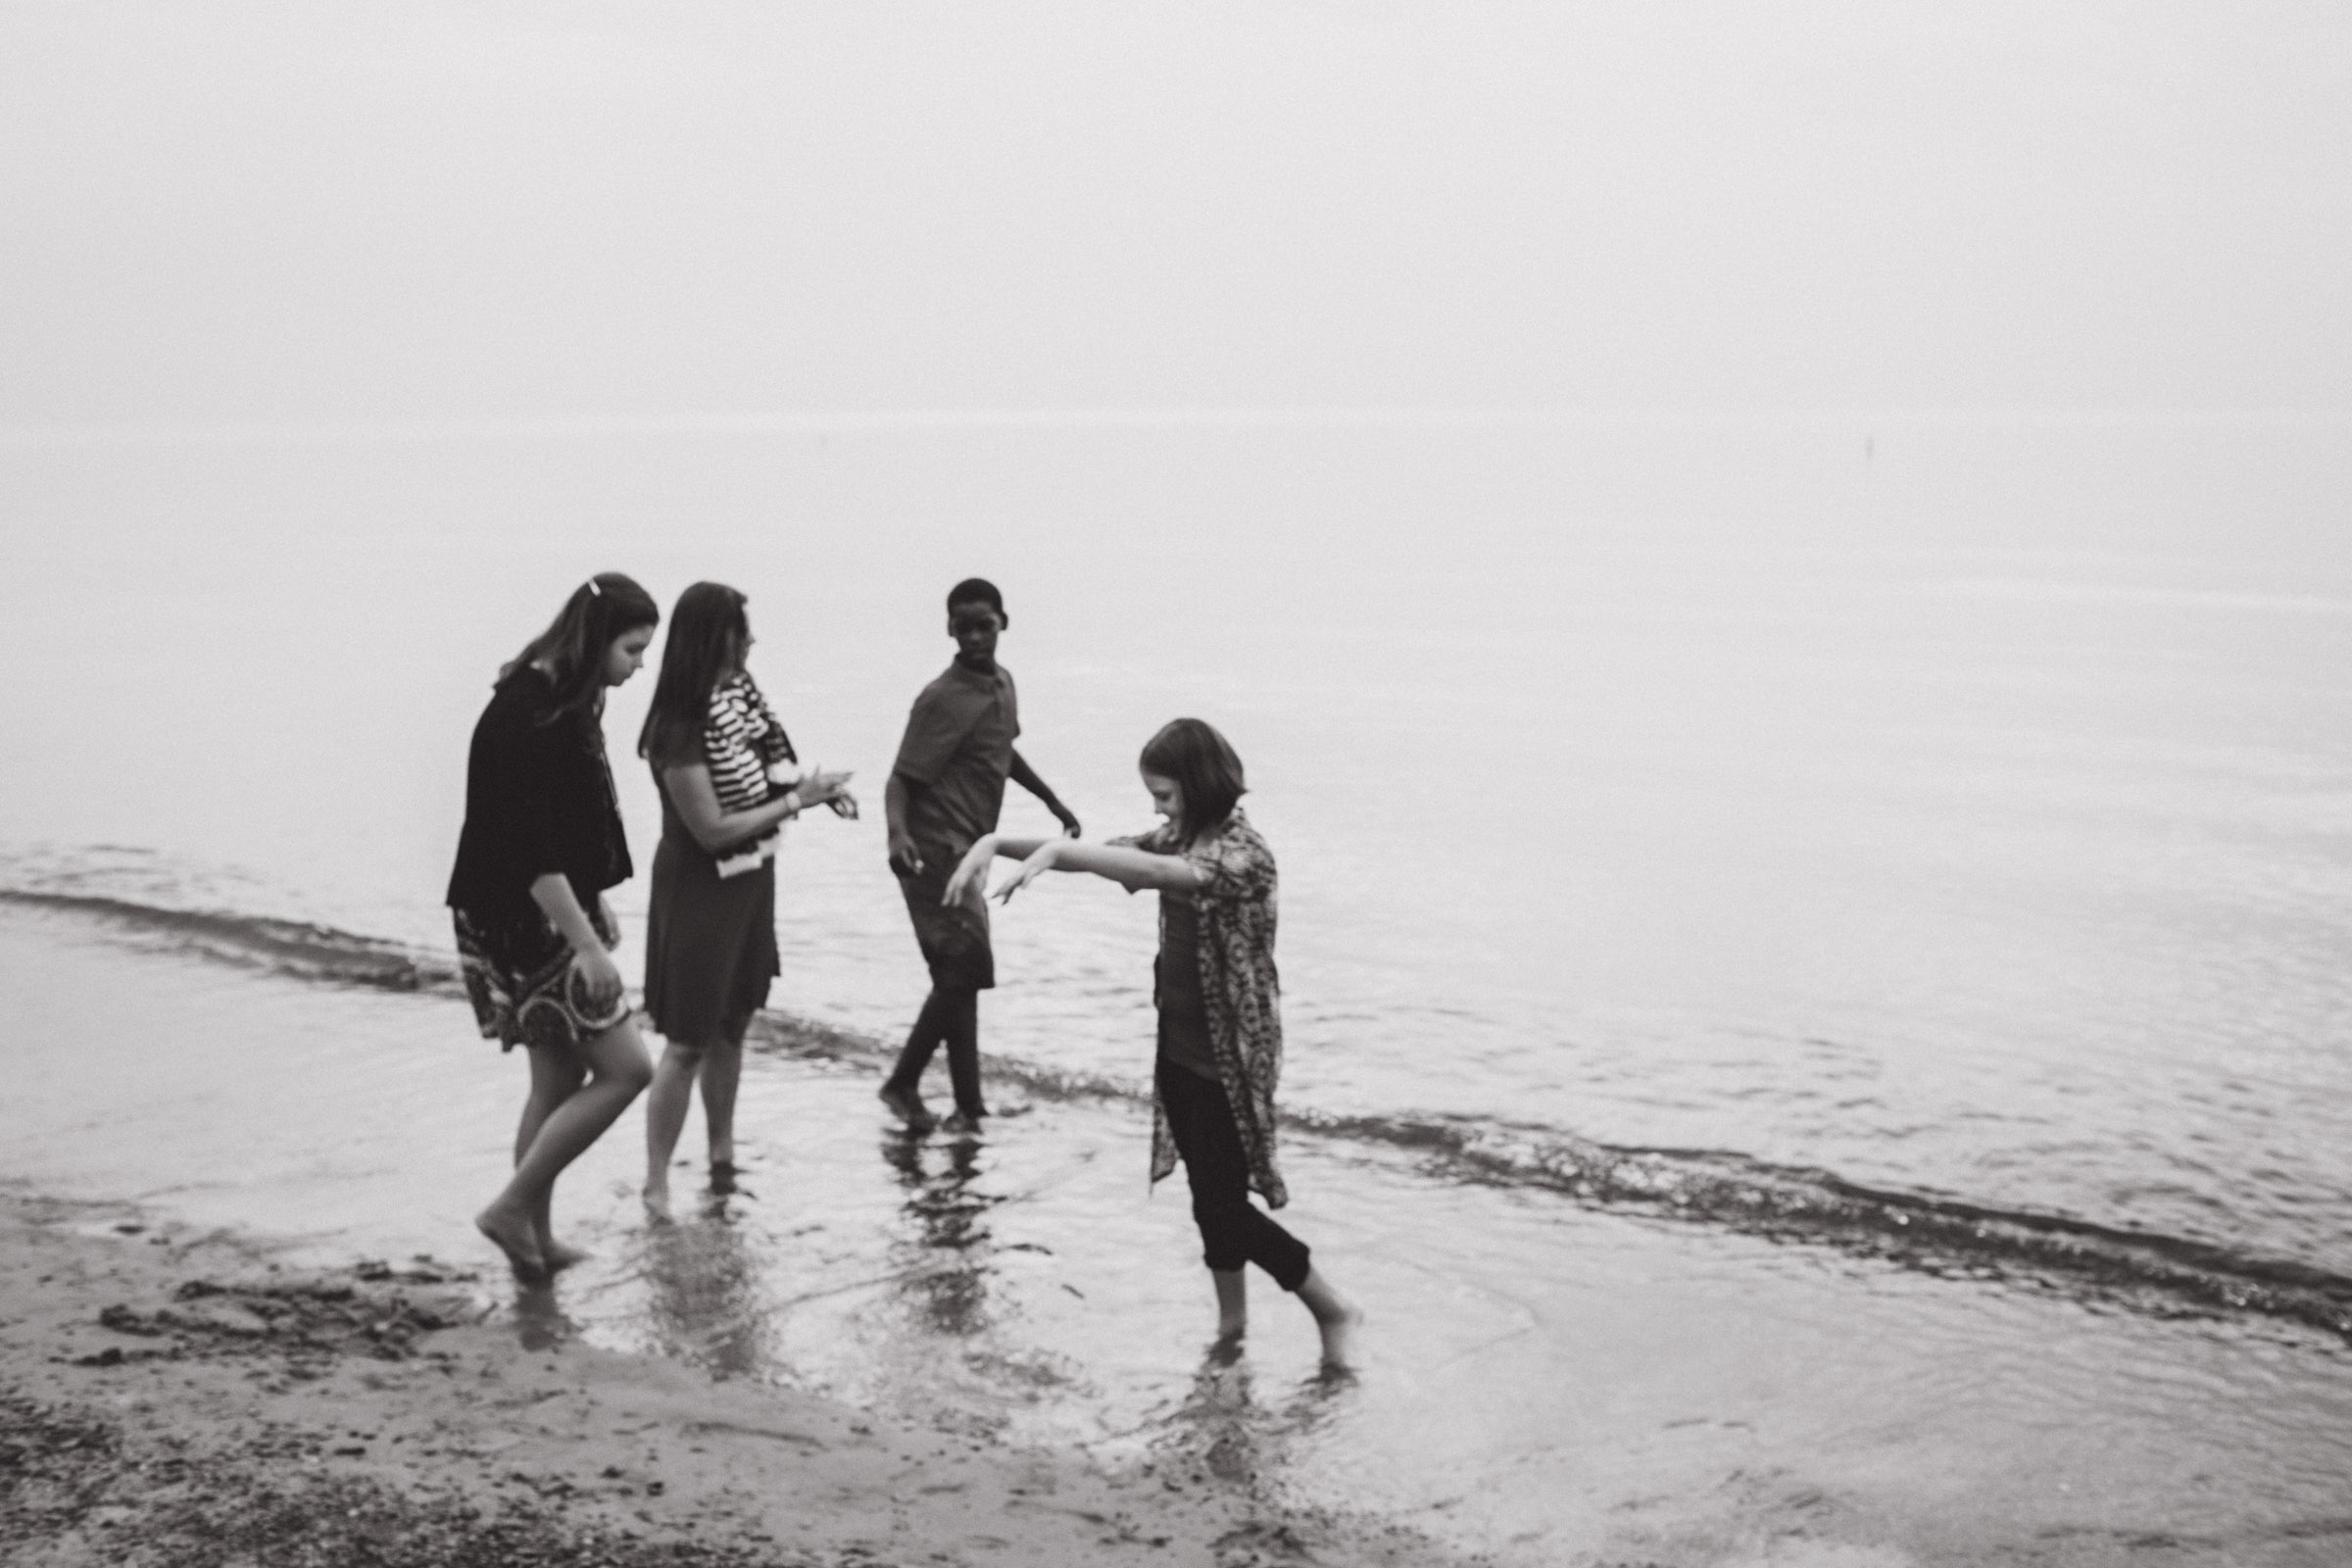 children dancing by the water, black and white